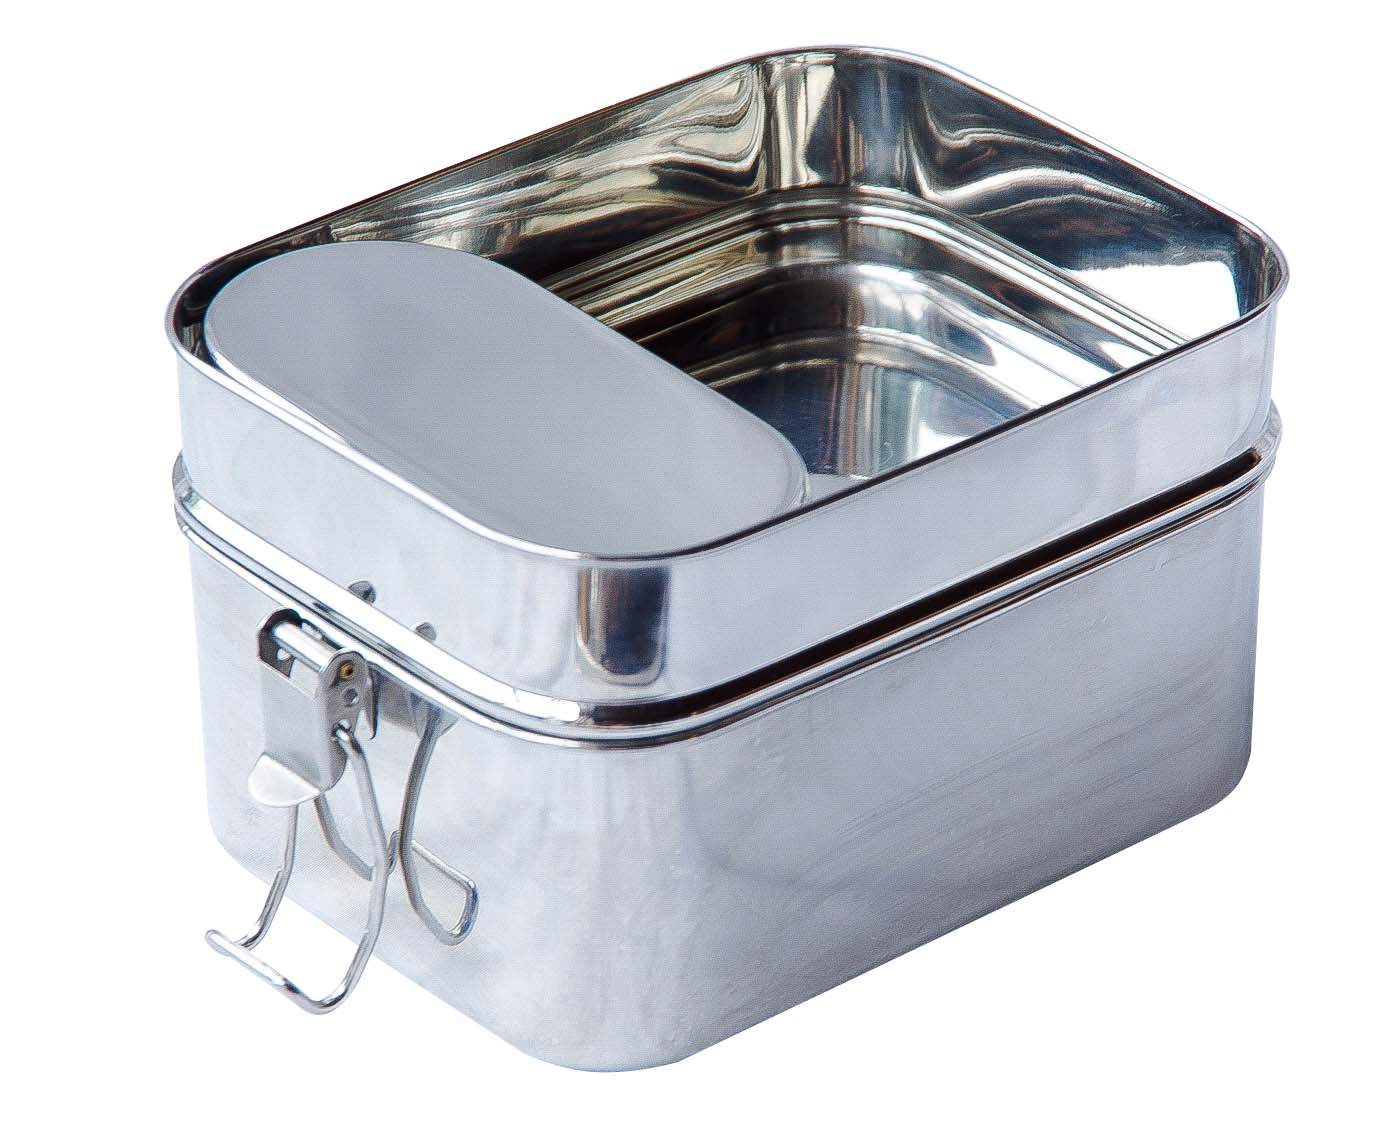 Stainless Steel Lunch Box Double Compartment Food carrier Food Storage Can